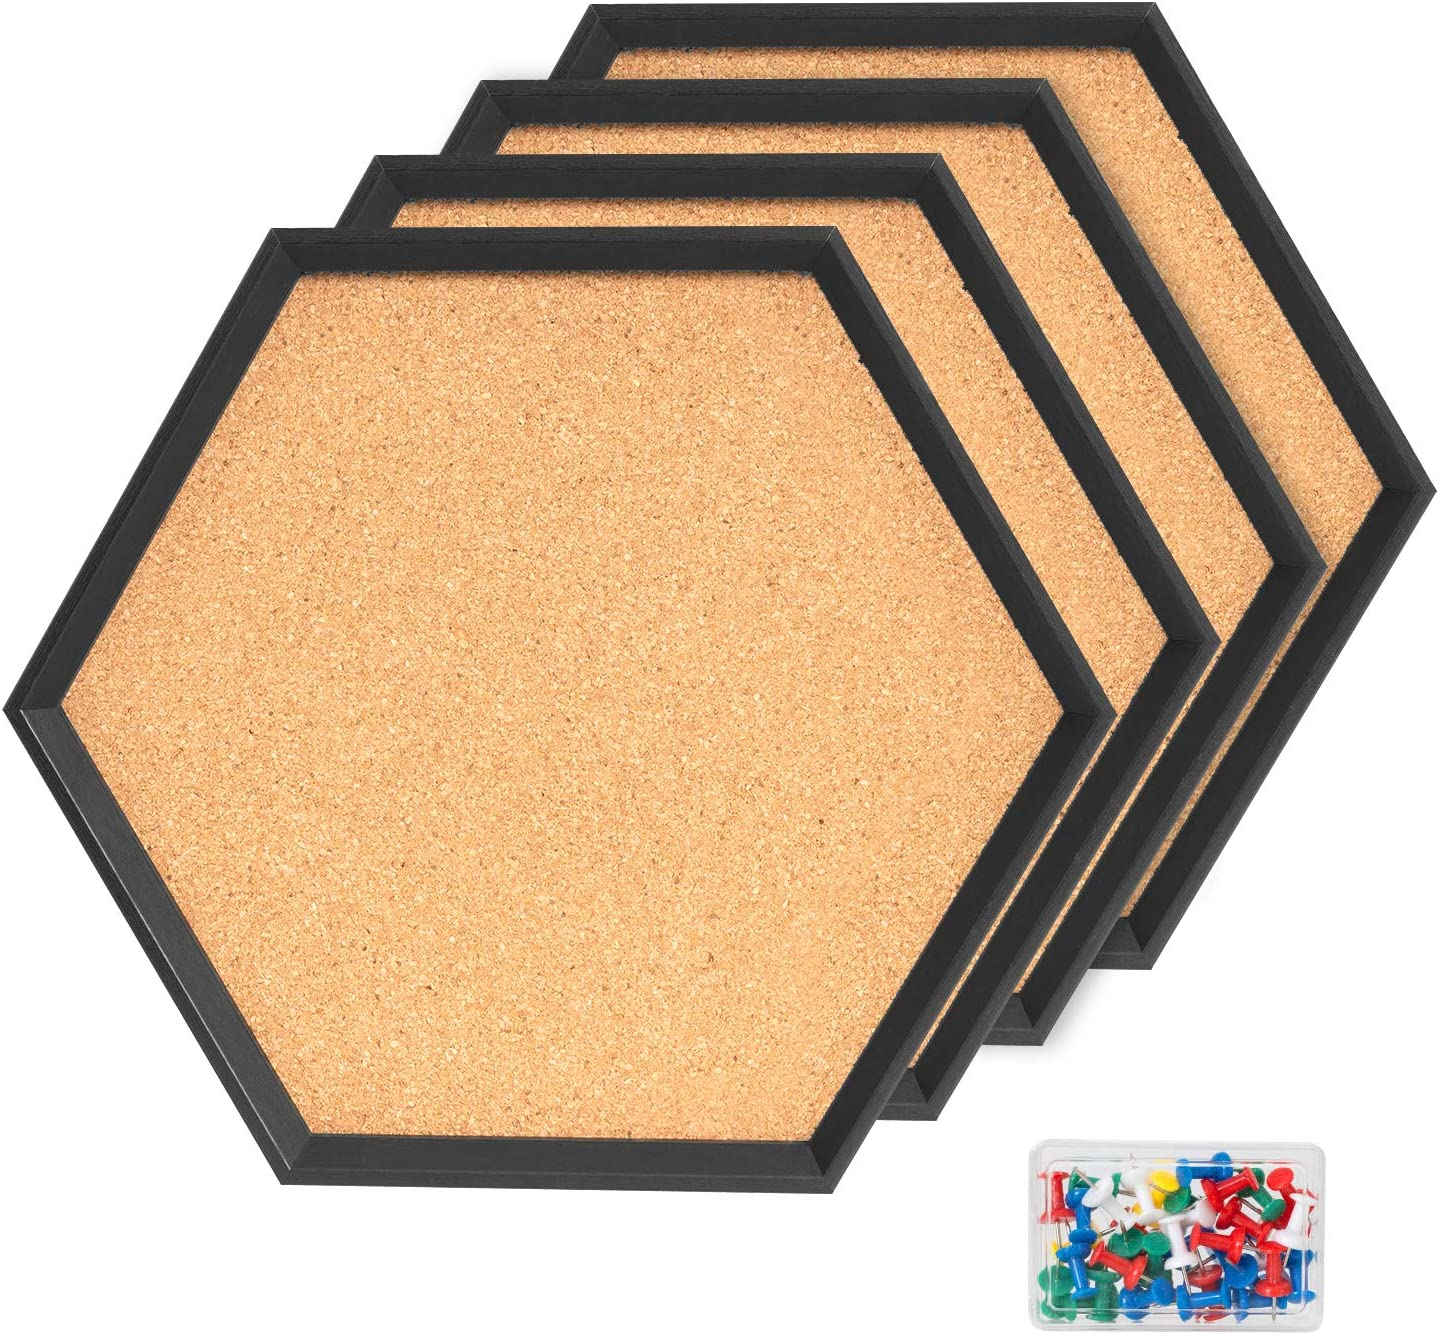 4 Packs Cork Boards Hexagon Shape with Black Framed Bulletin Board Modern Decorative Cork Boards for School, Home,Office(Set Including 40 Push Pins,Hardware and Template)